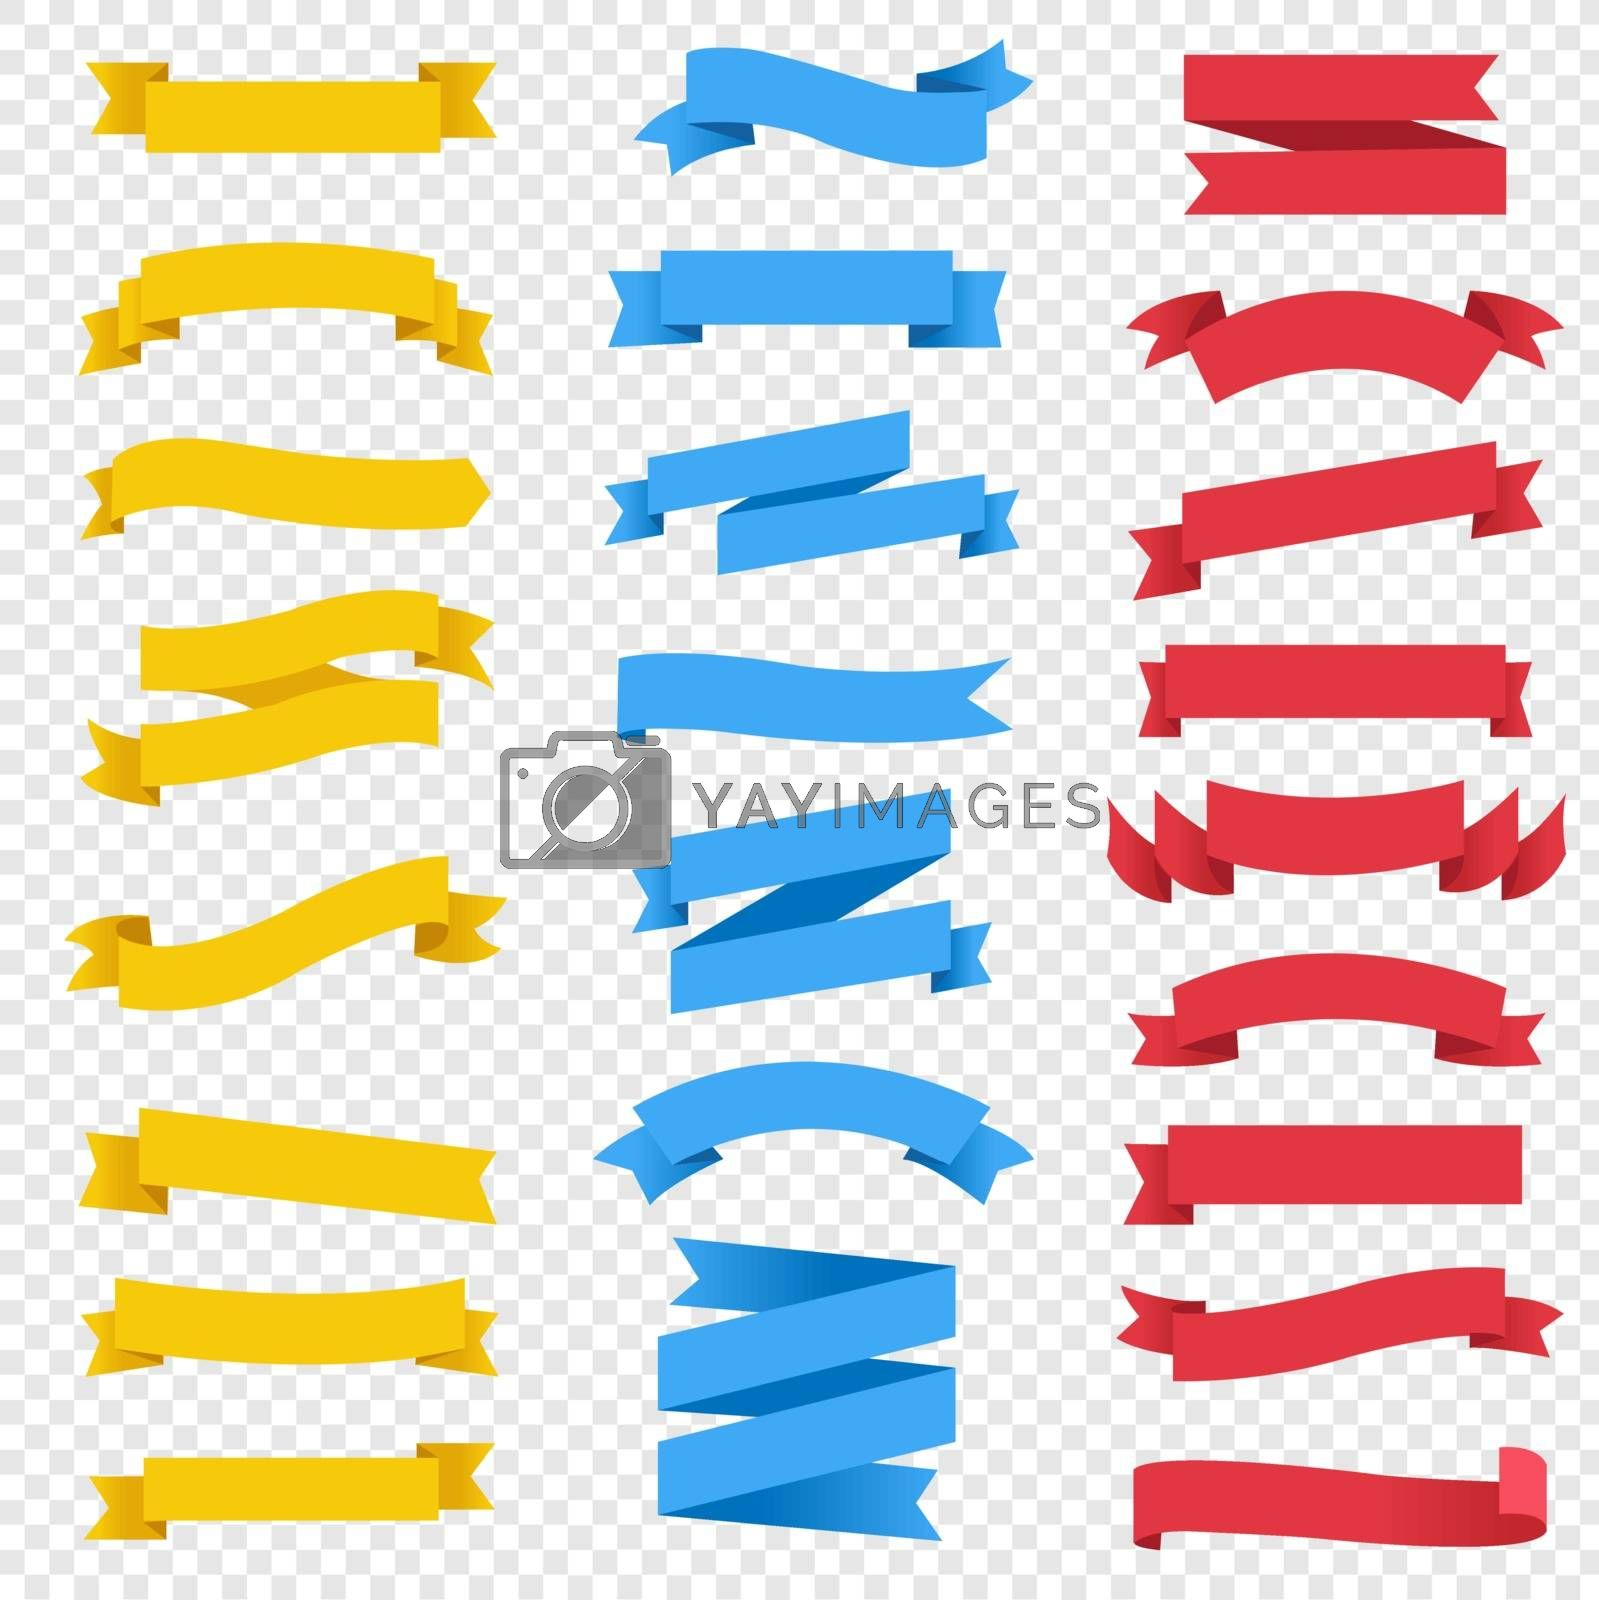 Colorful Ribbon Set Transparent Background With Gradient Mesh, Vector Illustration